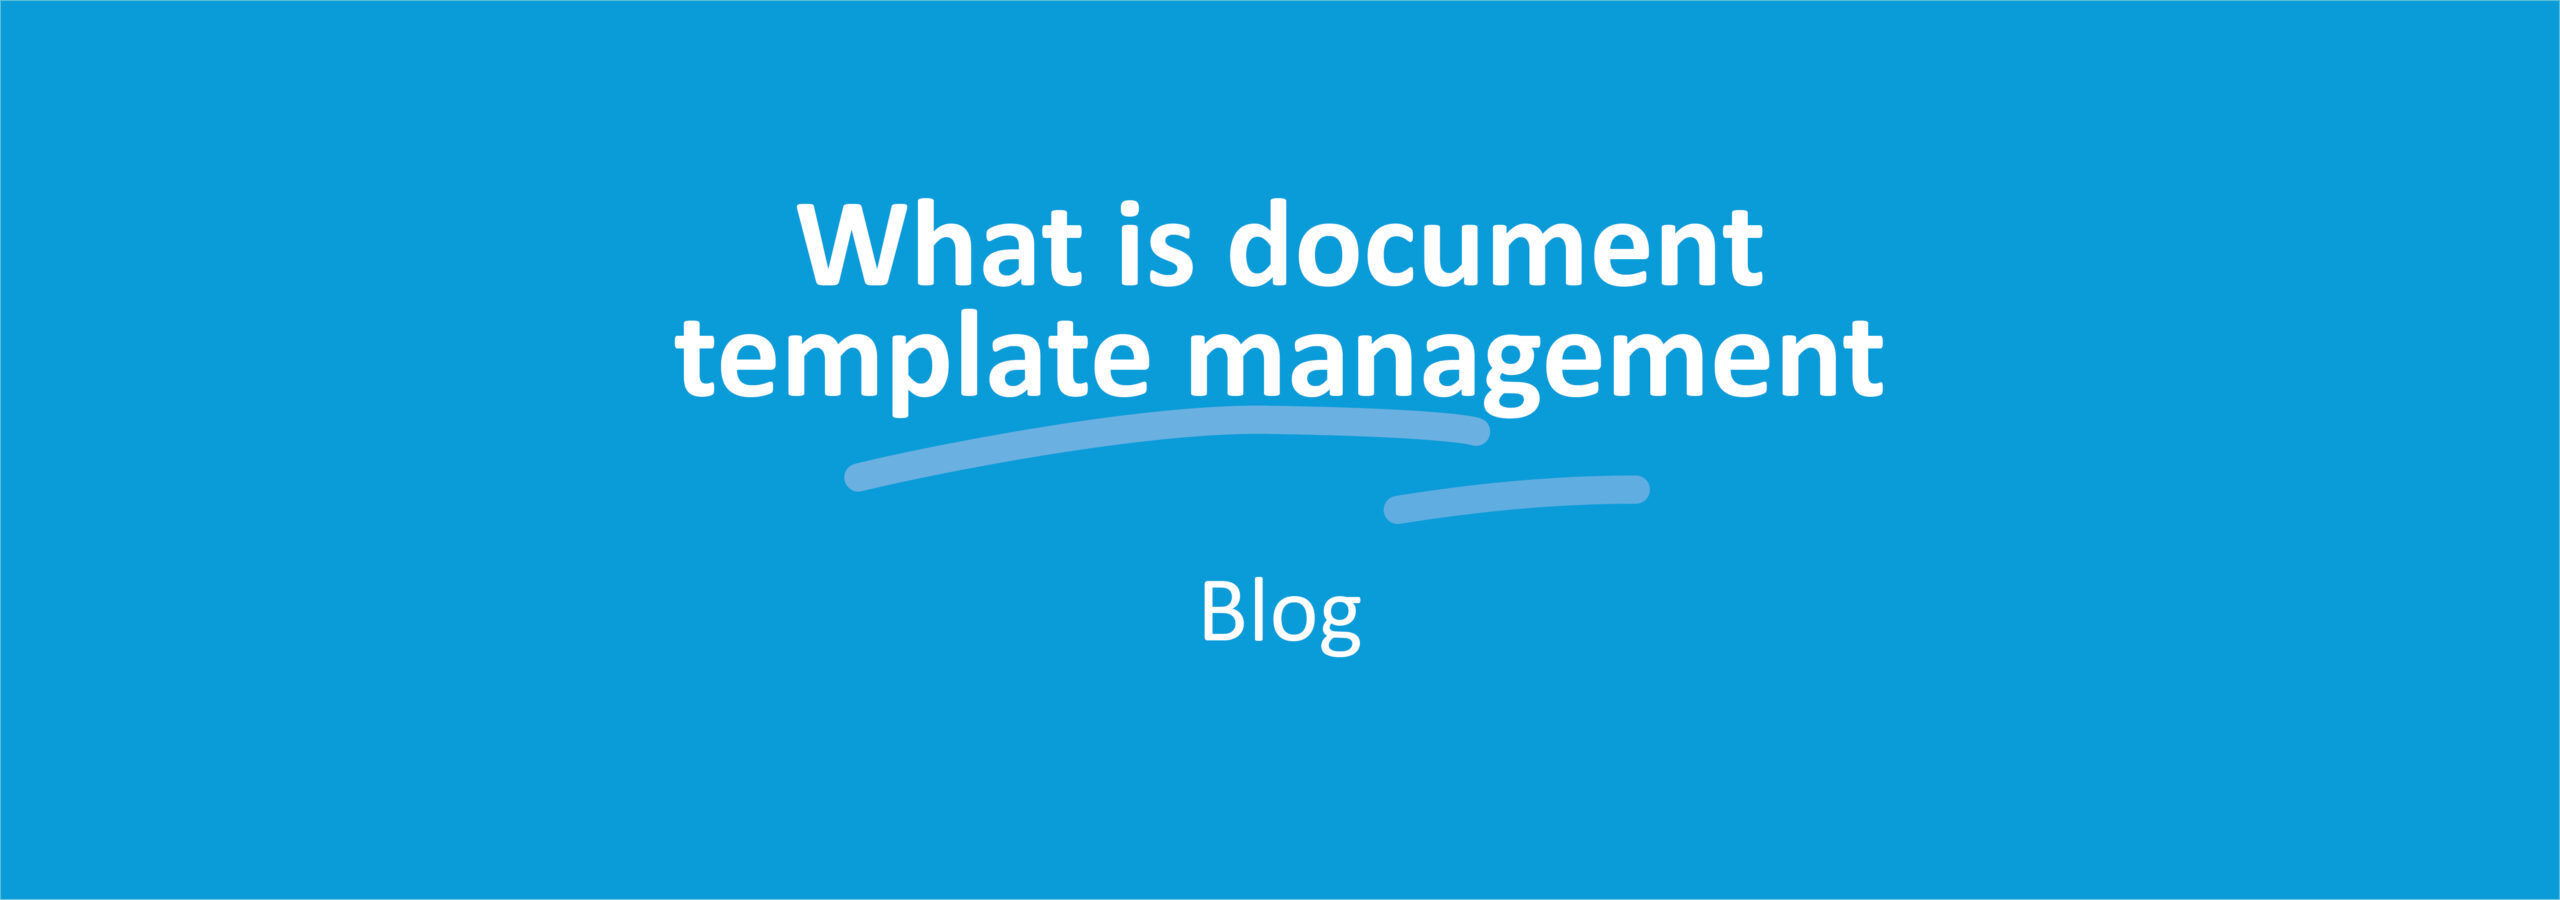 What is Document Template Management